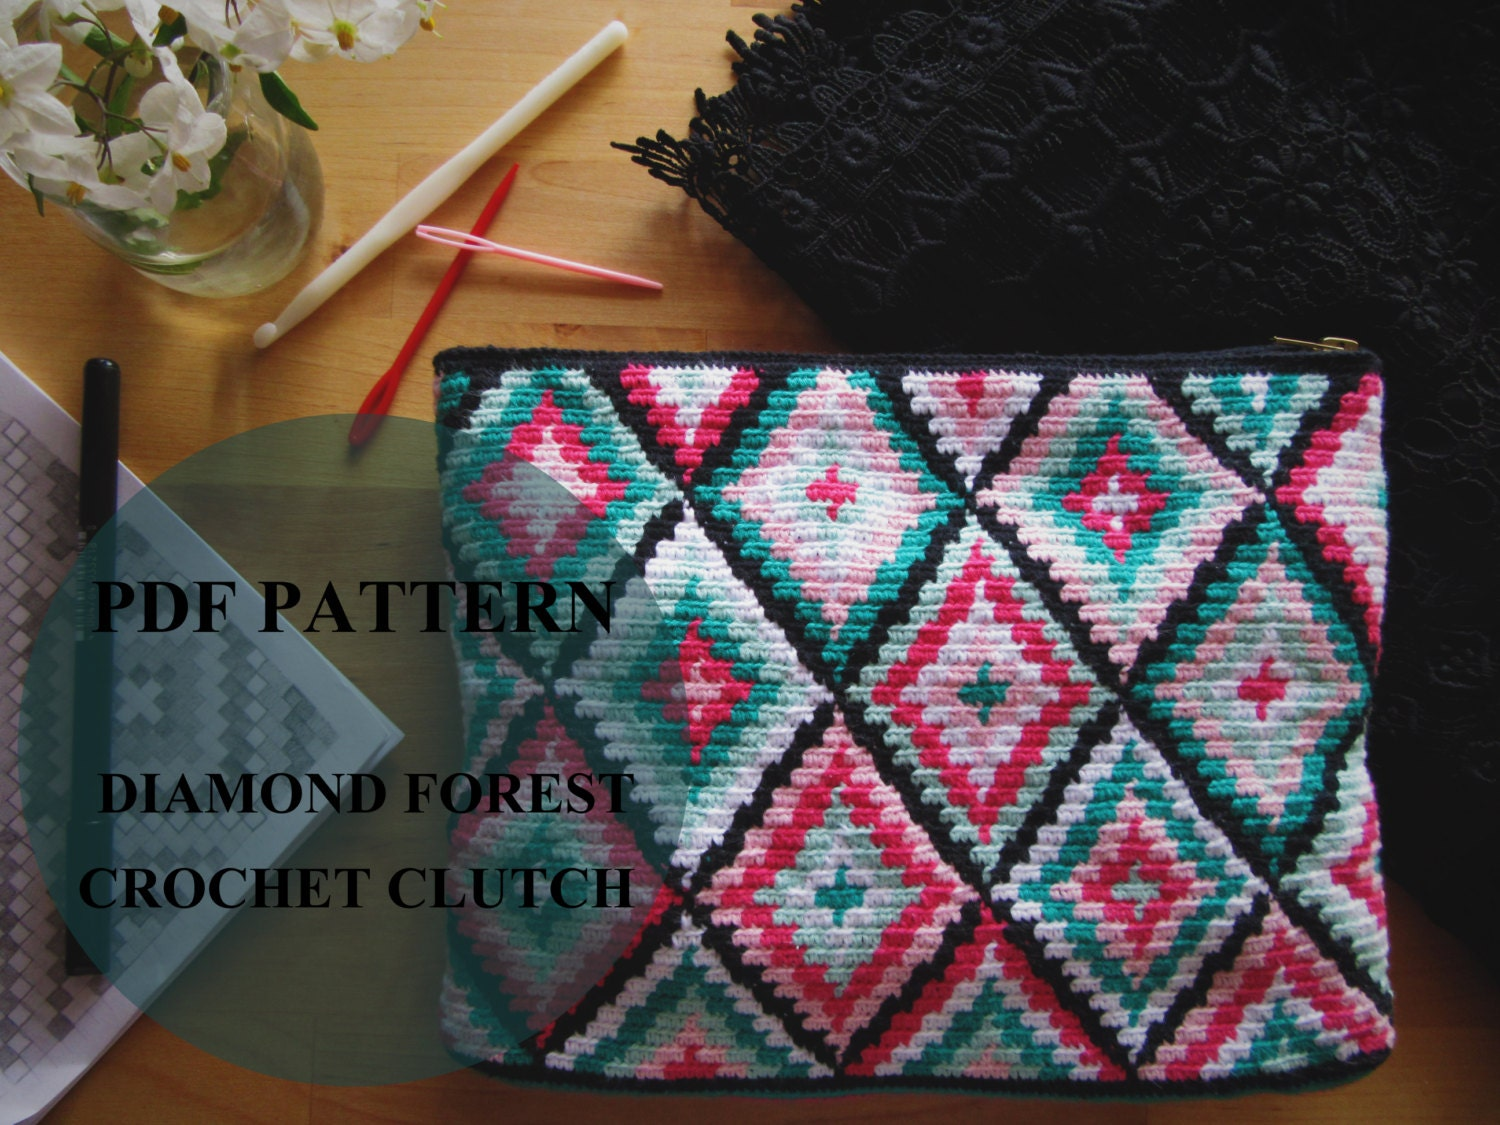 Diamond forest crochet clutch pattern tapestry crochet pattern this is a digital file bankloansurffo Gallery